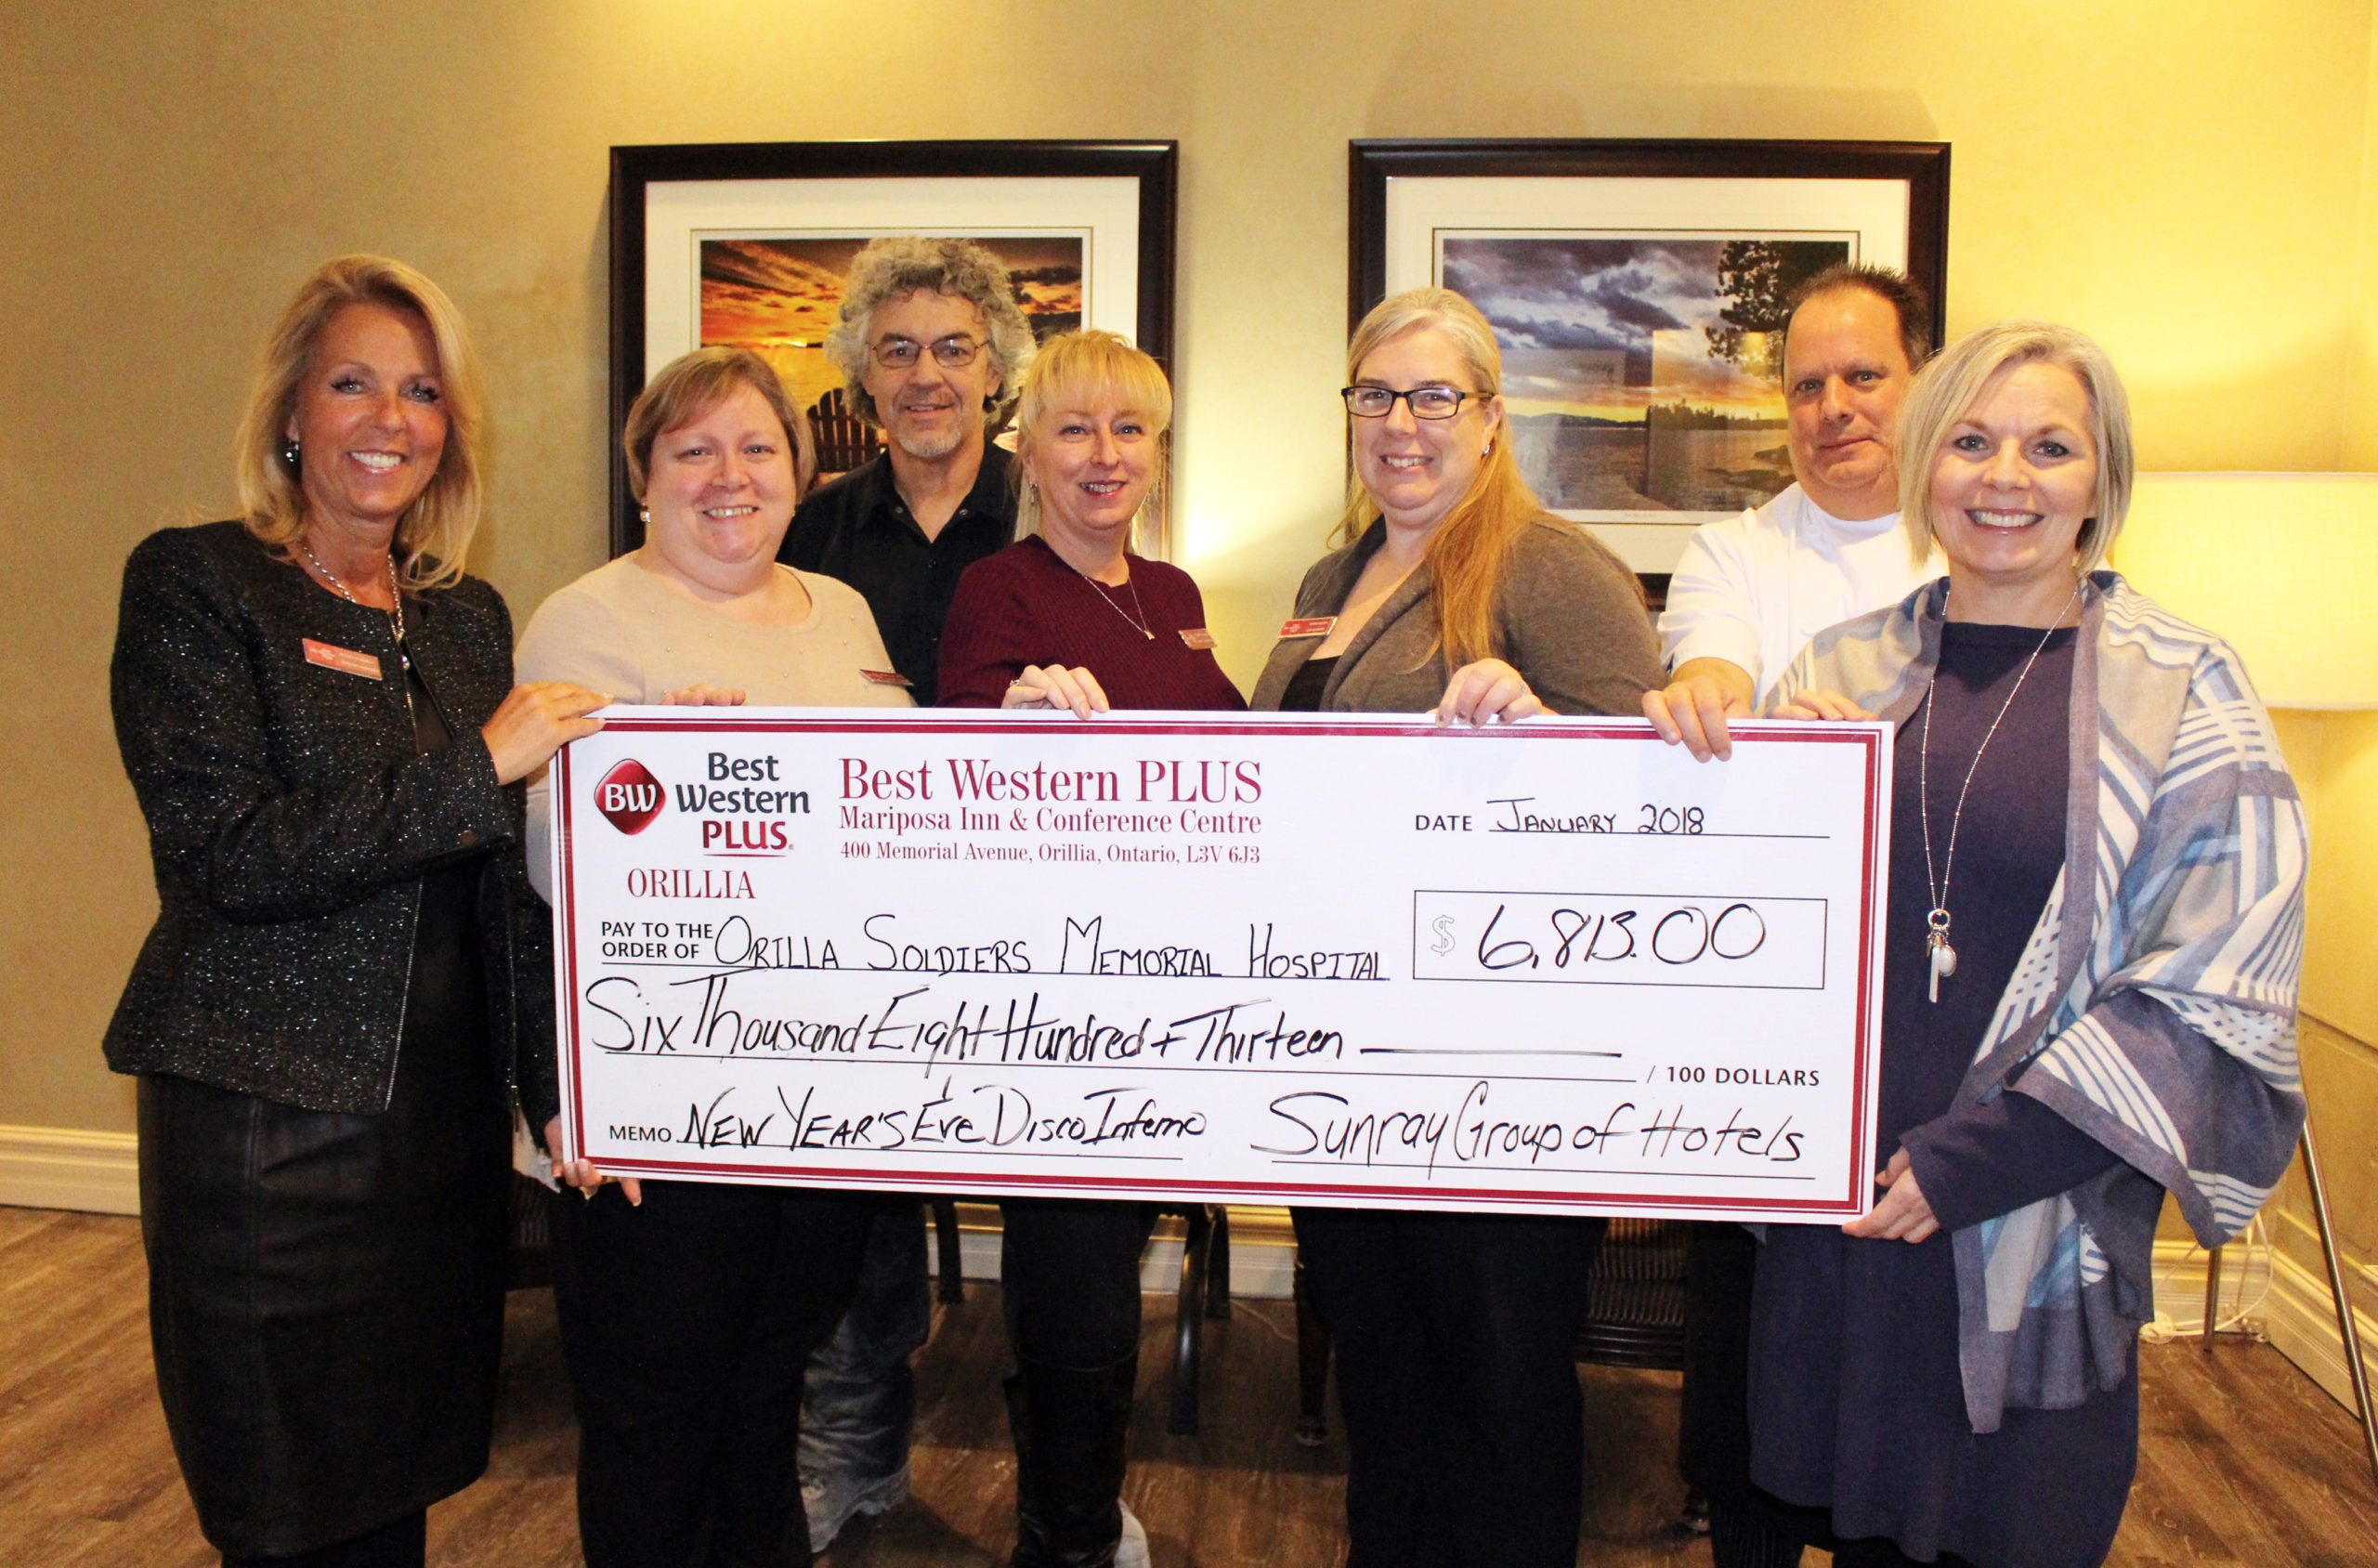 Best Western presents a cheque to Orillia Soldiers' Memorial Hospital Foundation